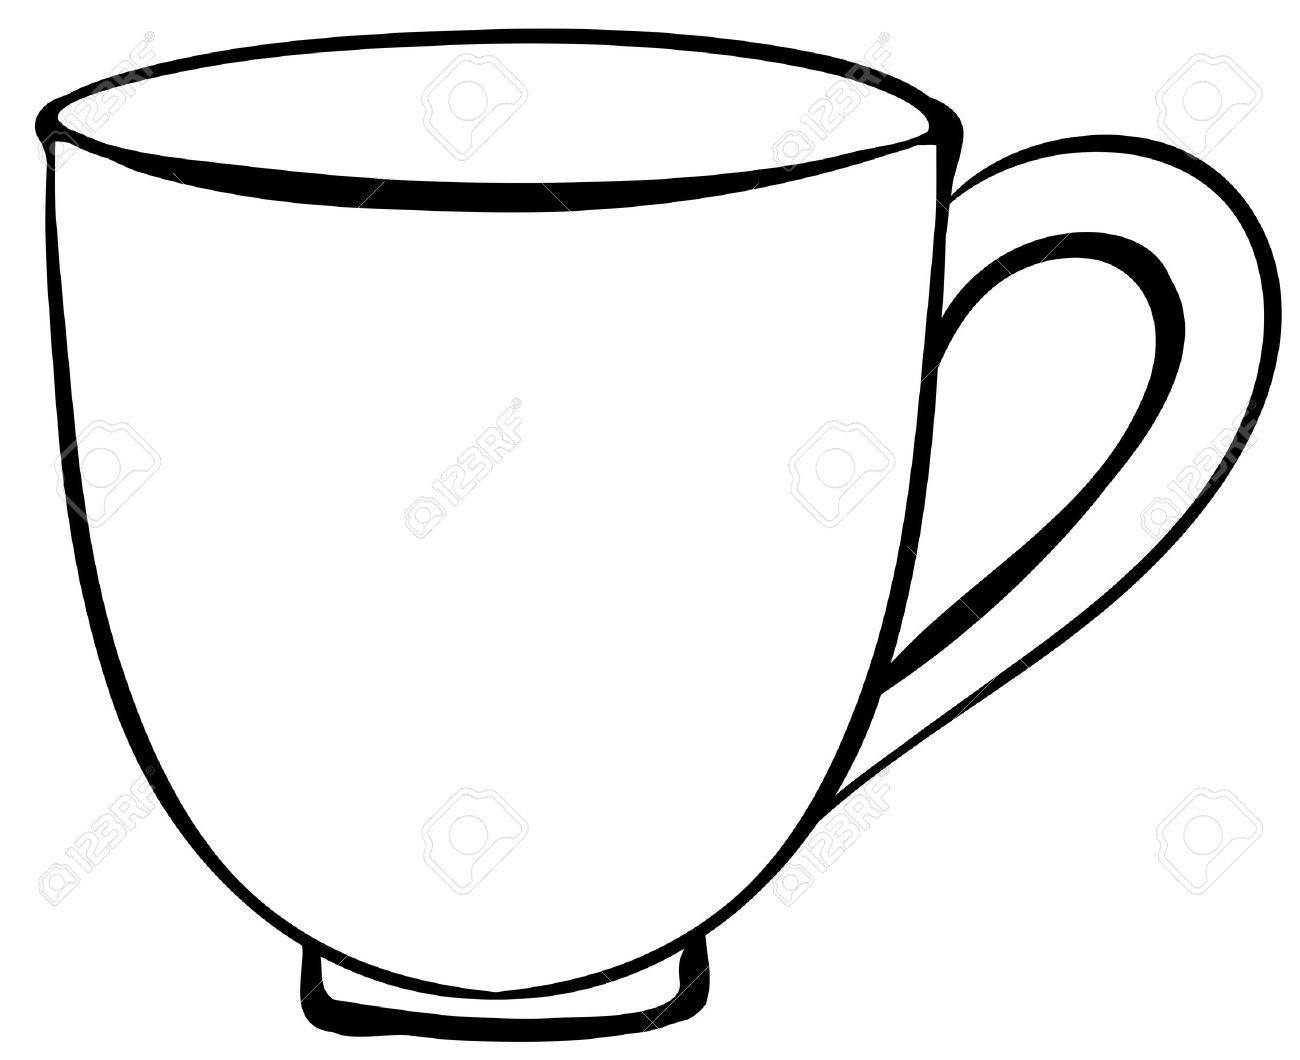 Clipart black and white cup 1 » Clipart Portal.